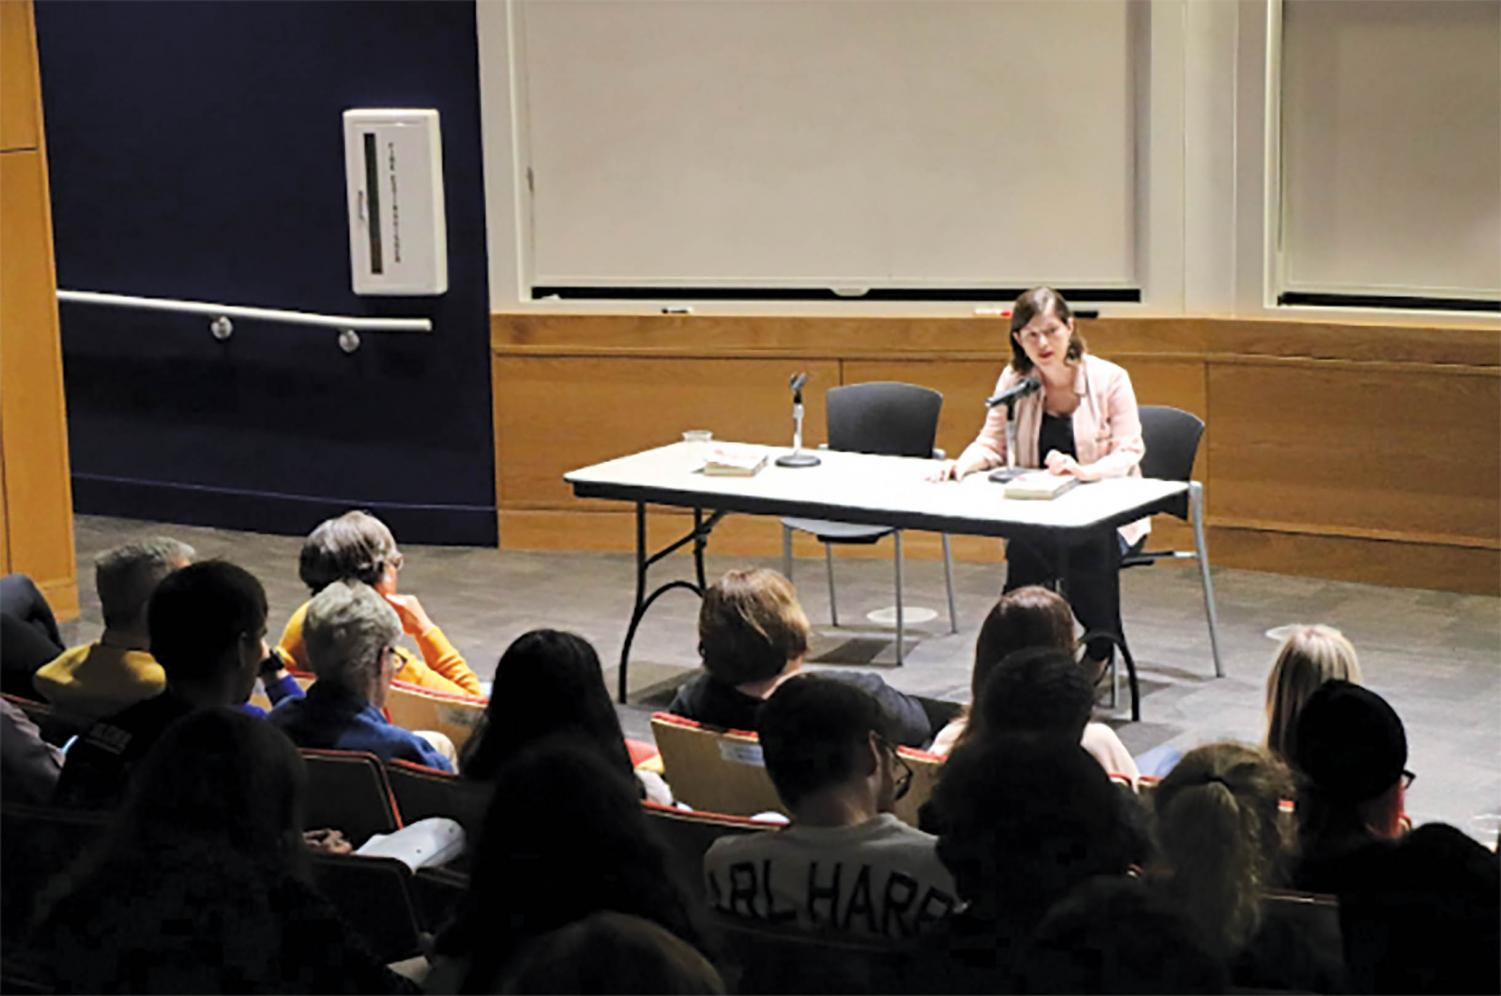 Jennifer duBois speaks to students in Carter Auditorium about all things writing. Along with being an award-winning author, duBois also teaches at Texas State University in the Masters of Fine Arts program.